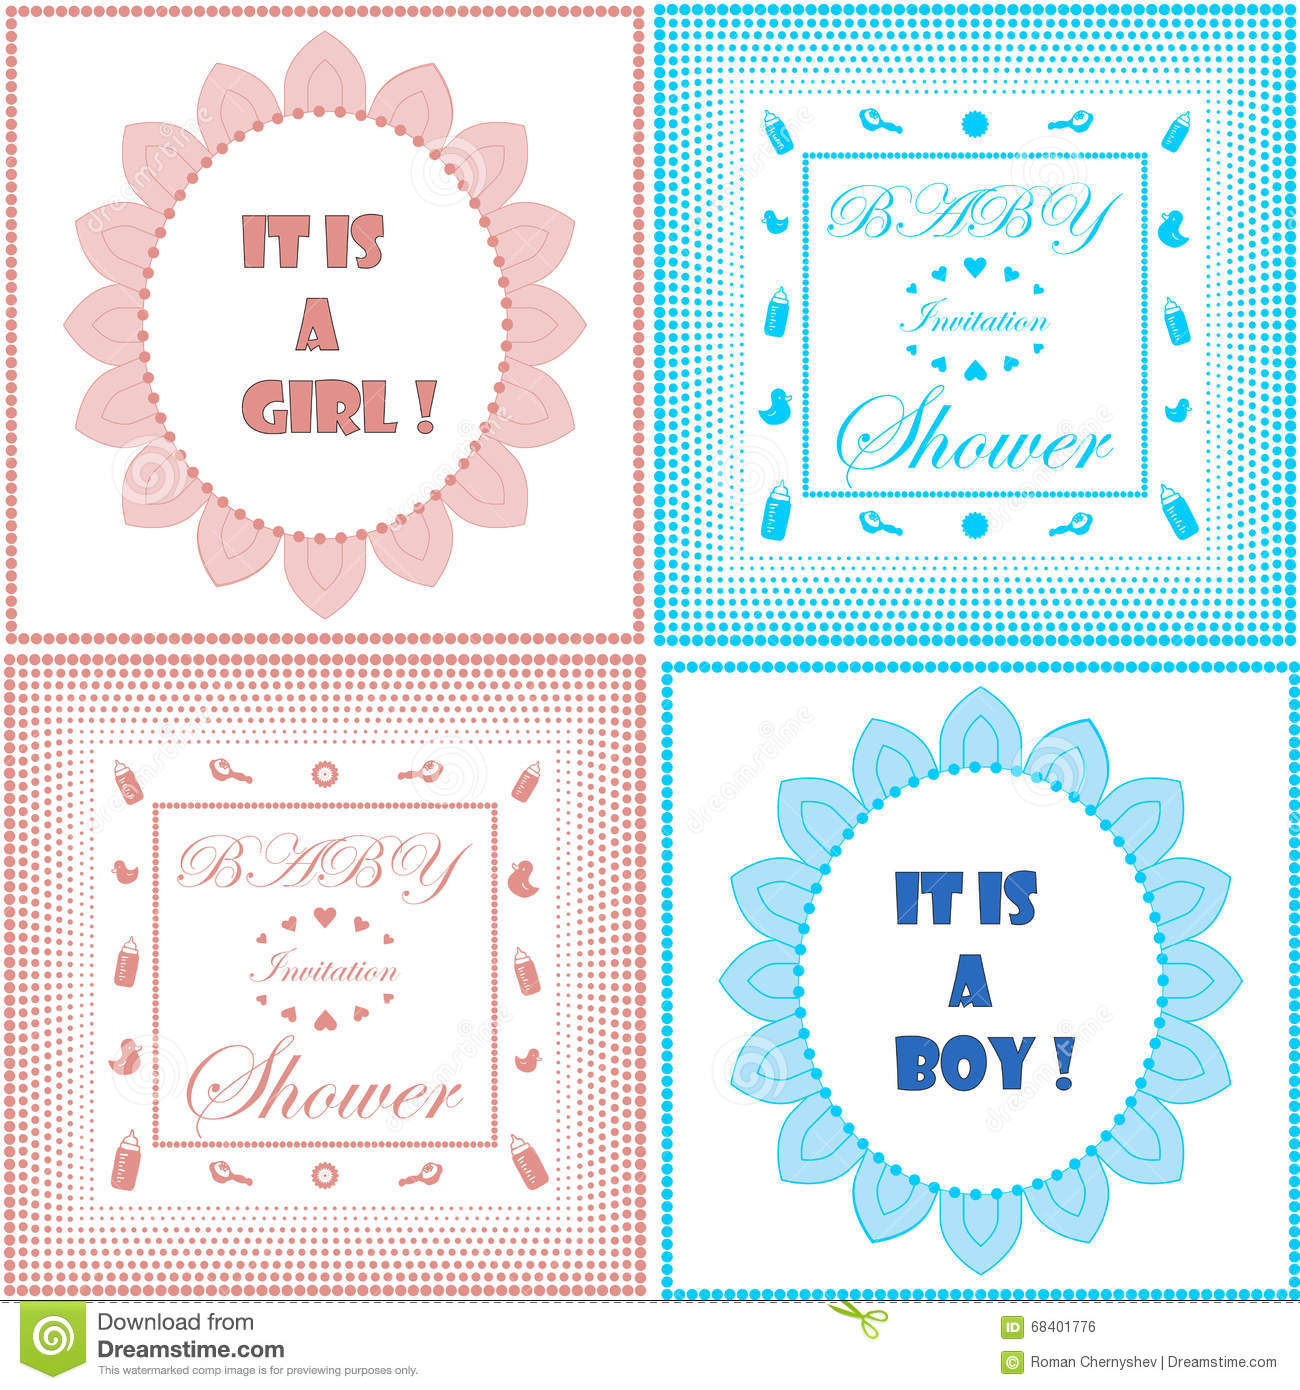 Baby announcement card template vector | free download.